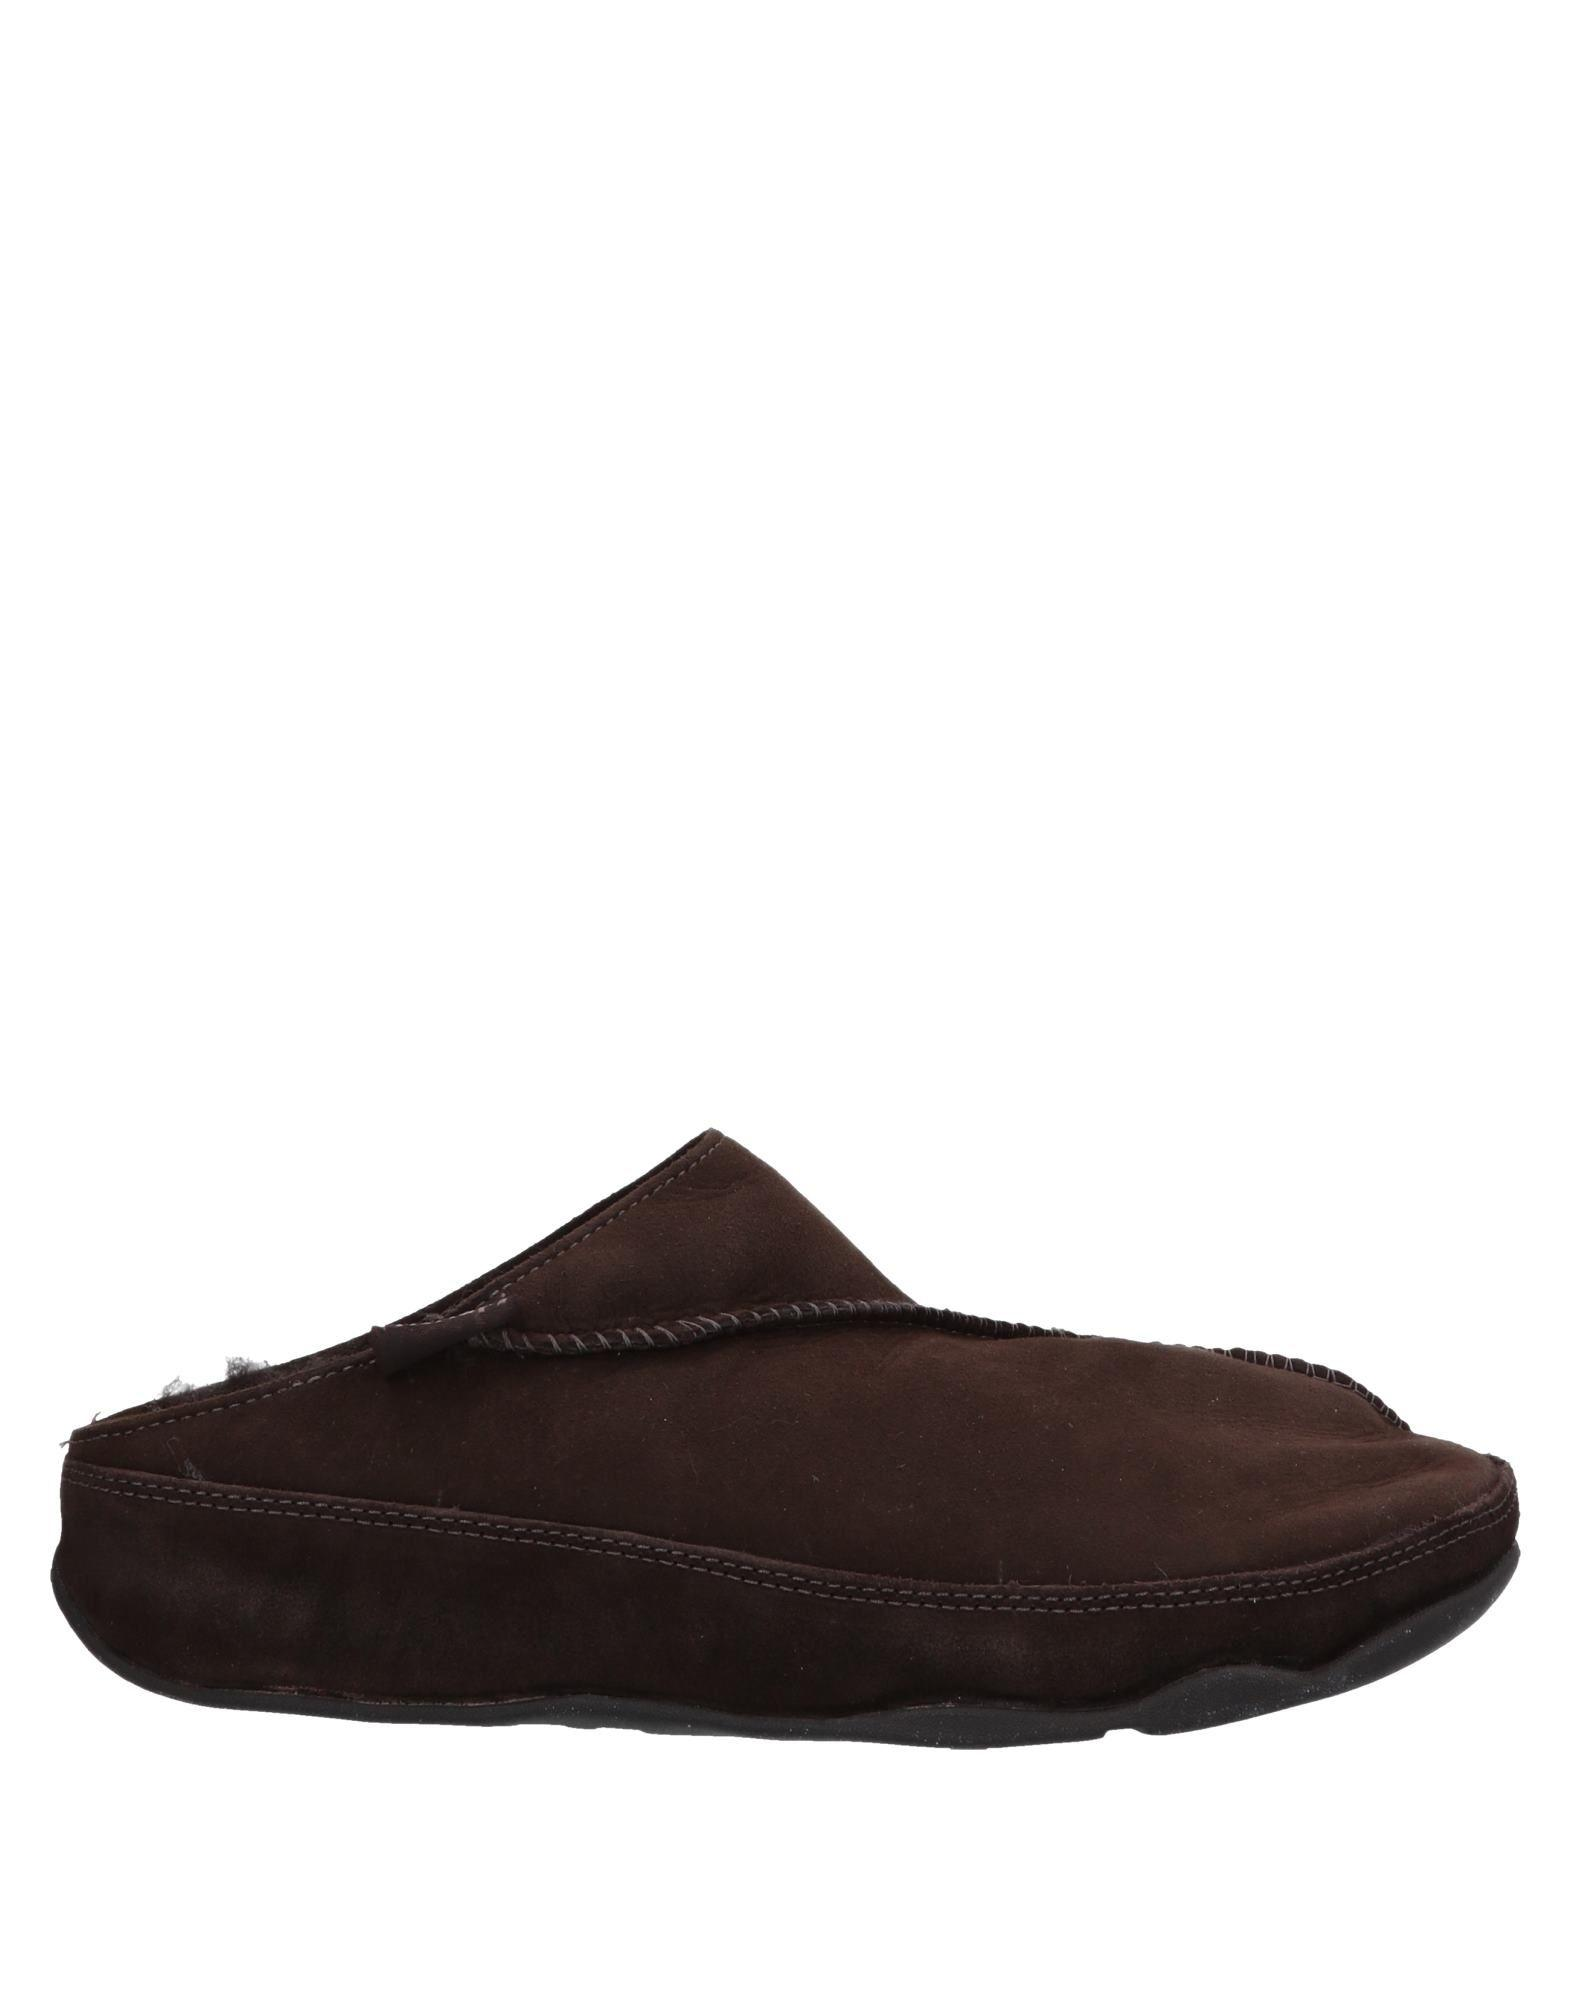 8ace4be7356 Lyst - Fitflop Mules in Brown for Men